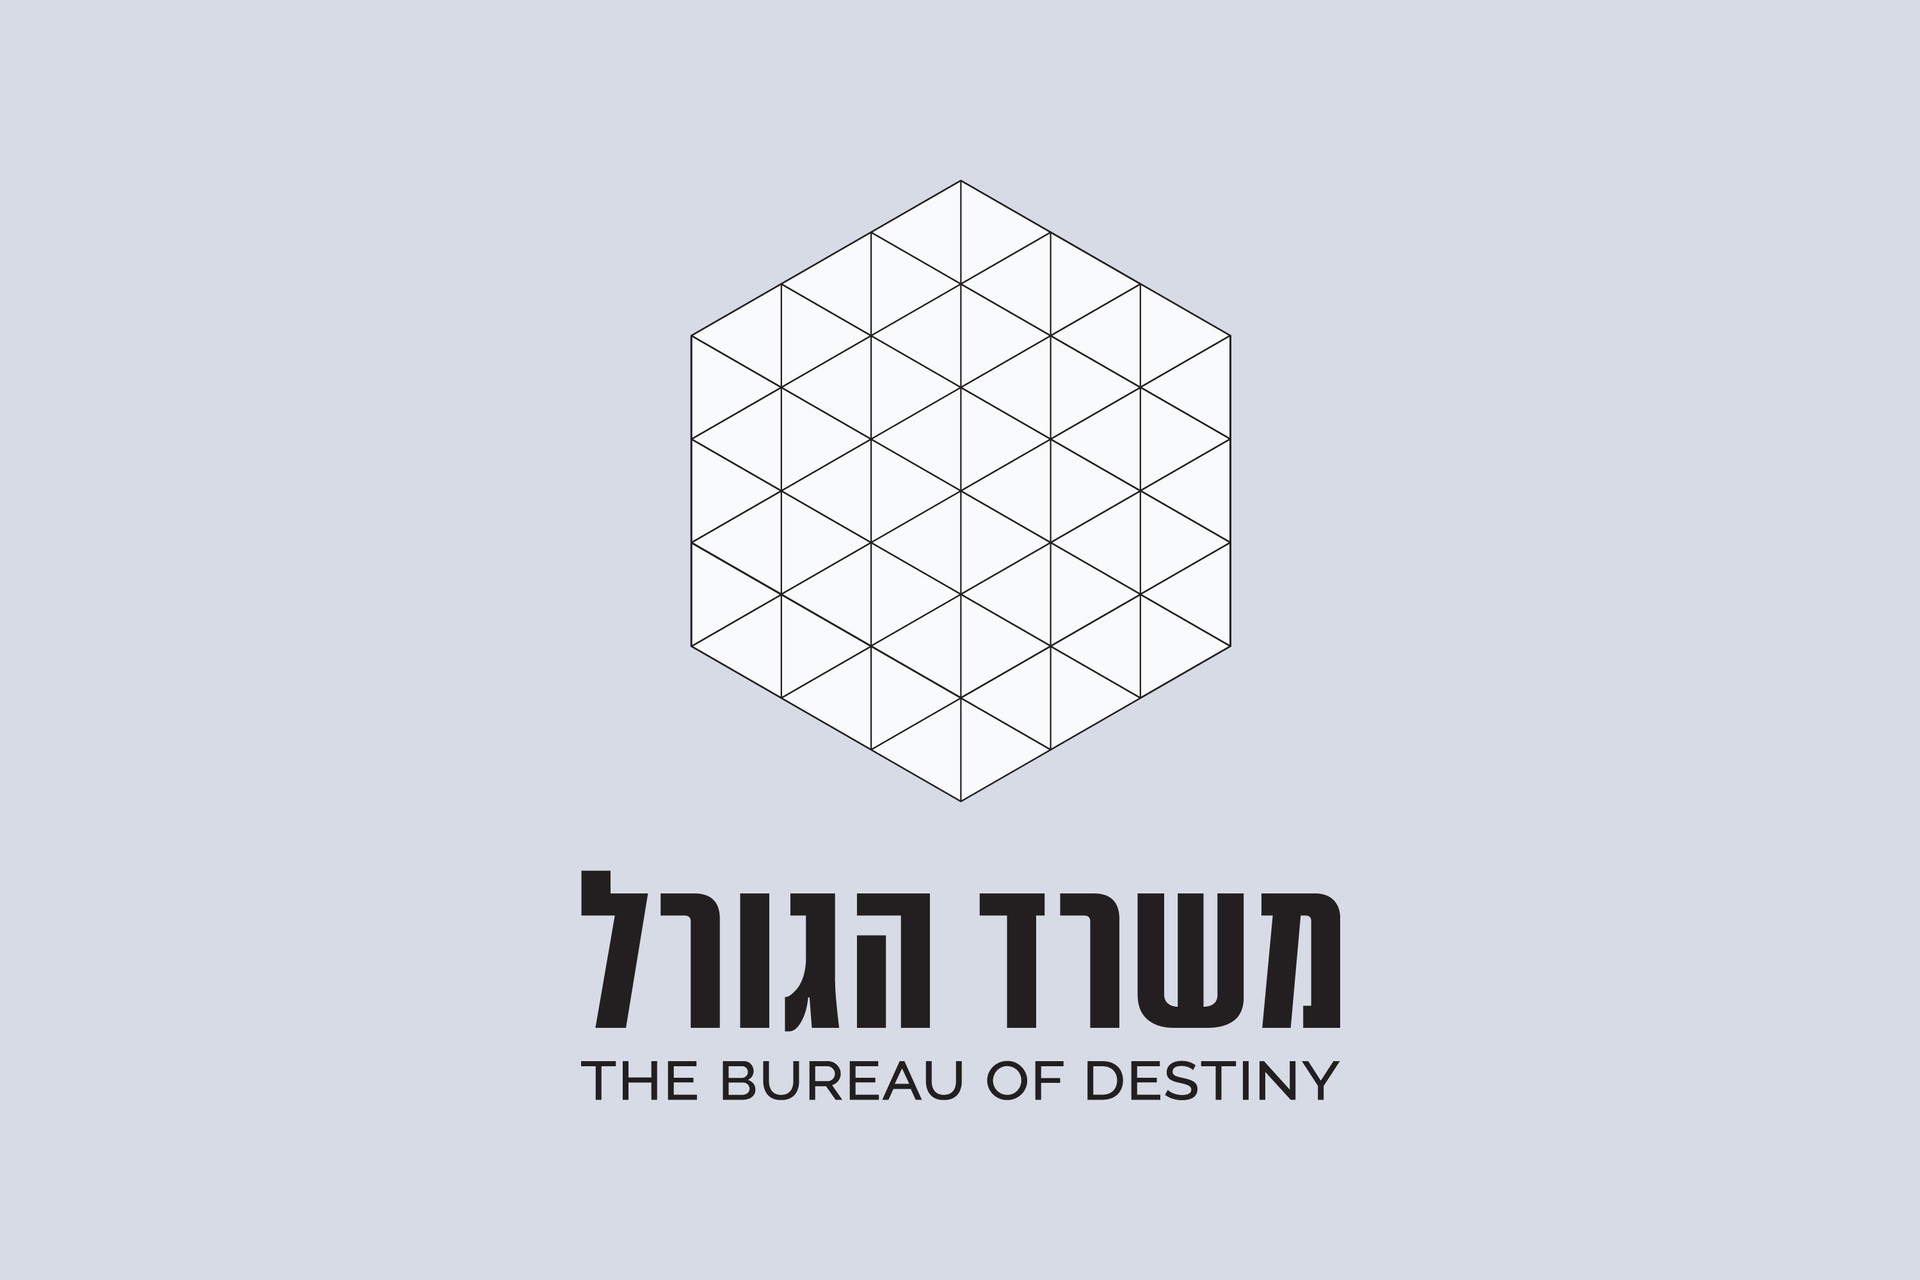 The Bureau of Destiny